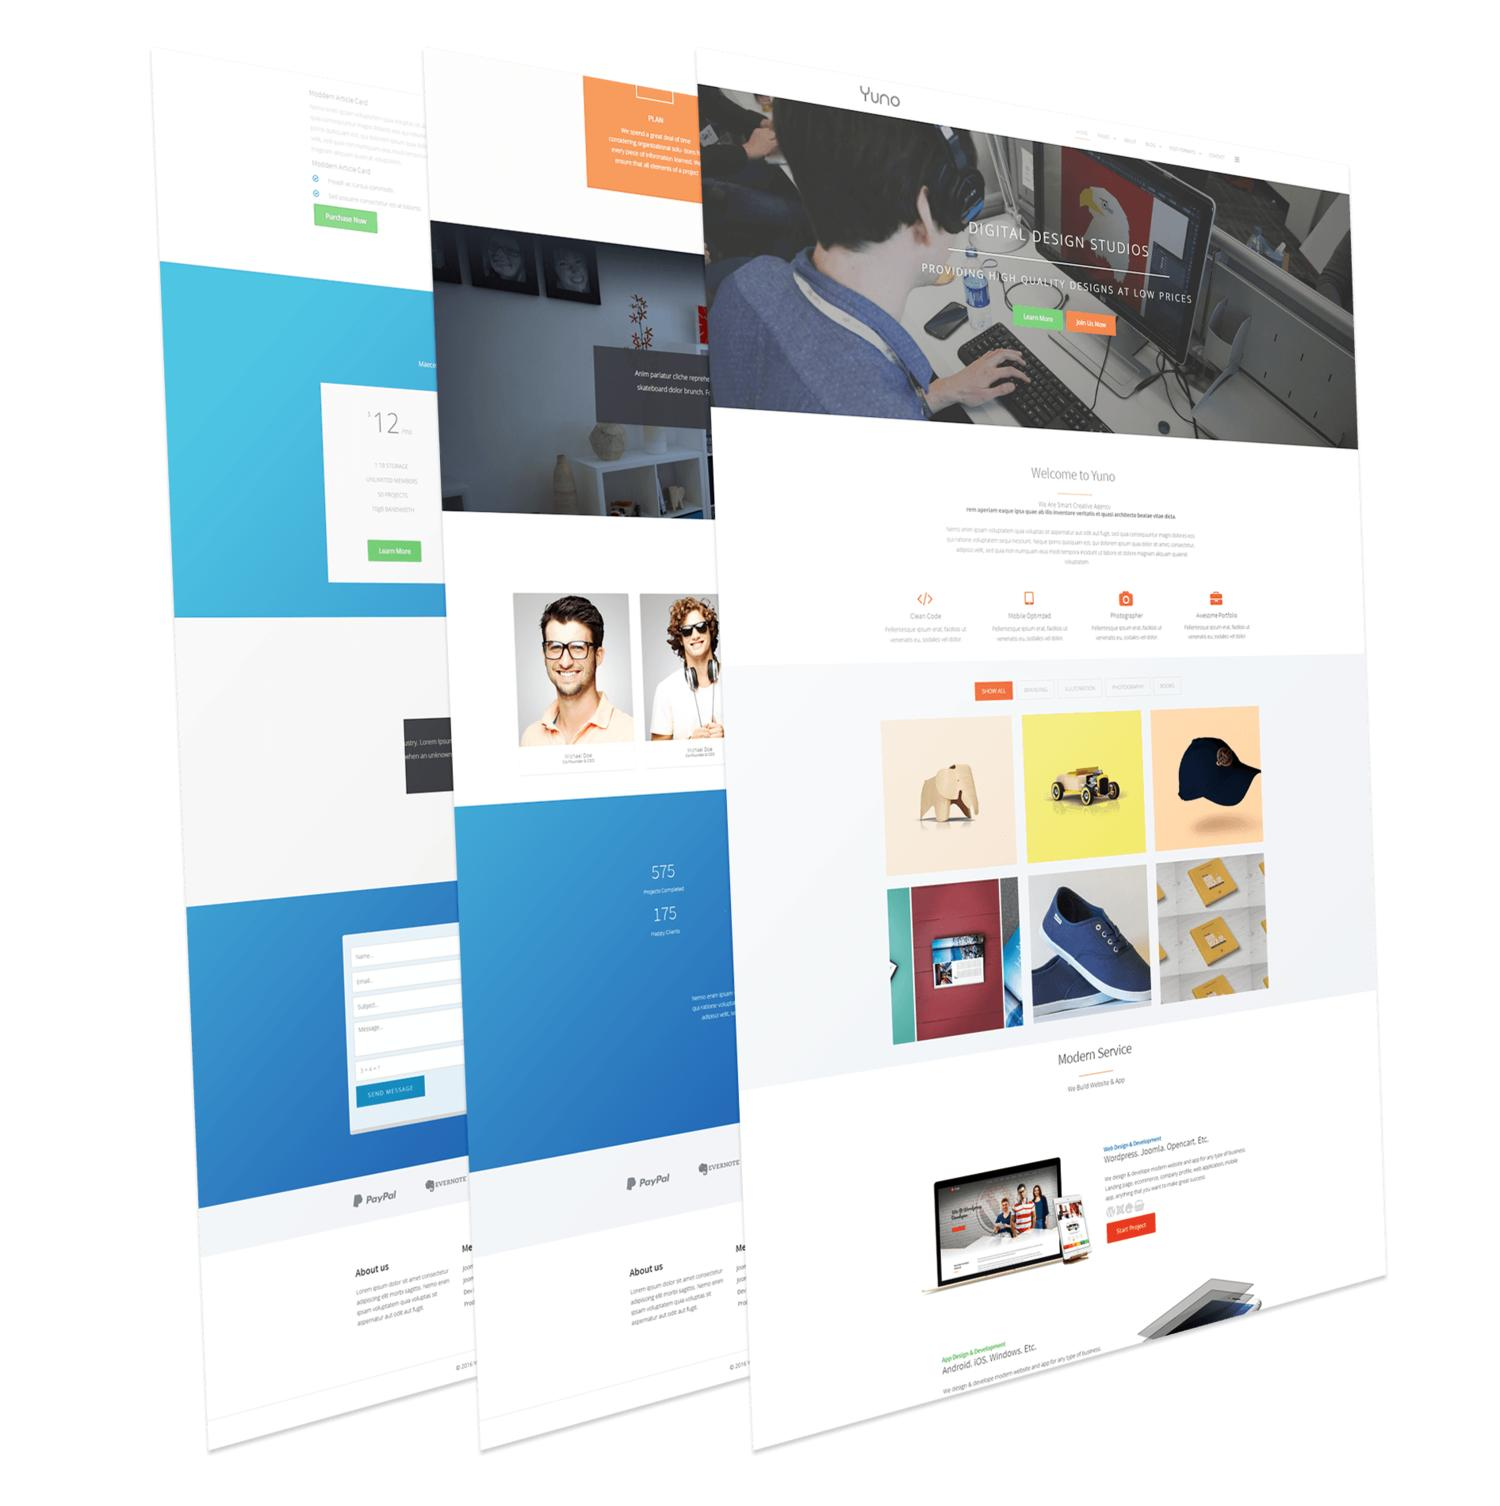 Themeforest Joomla Theme Installation & Demo Setup + Logo Setup by 1webtutor - 99342